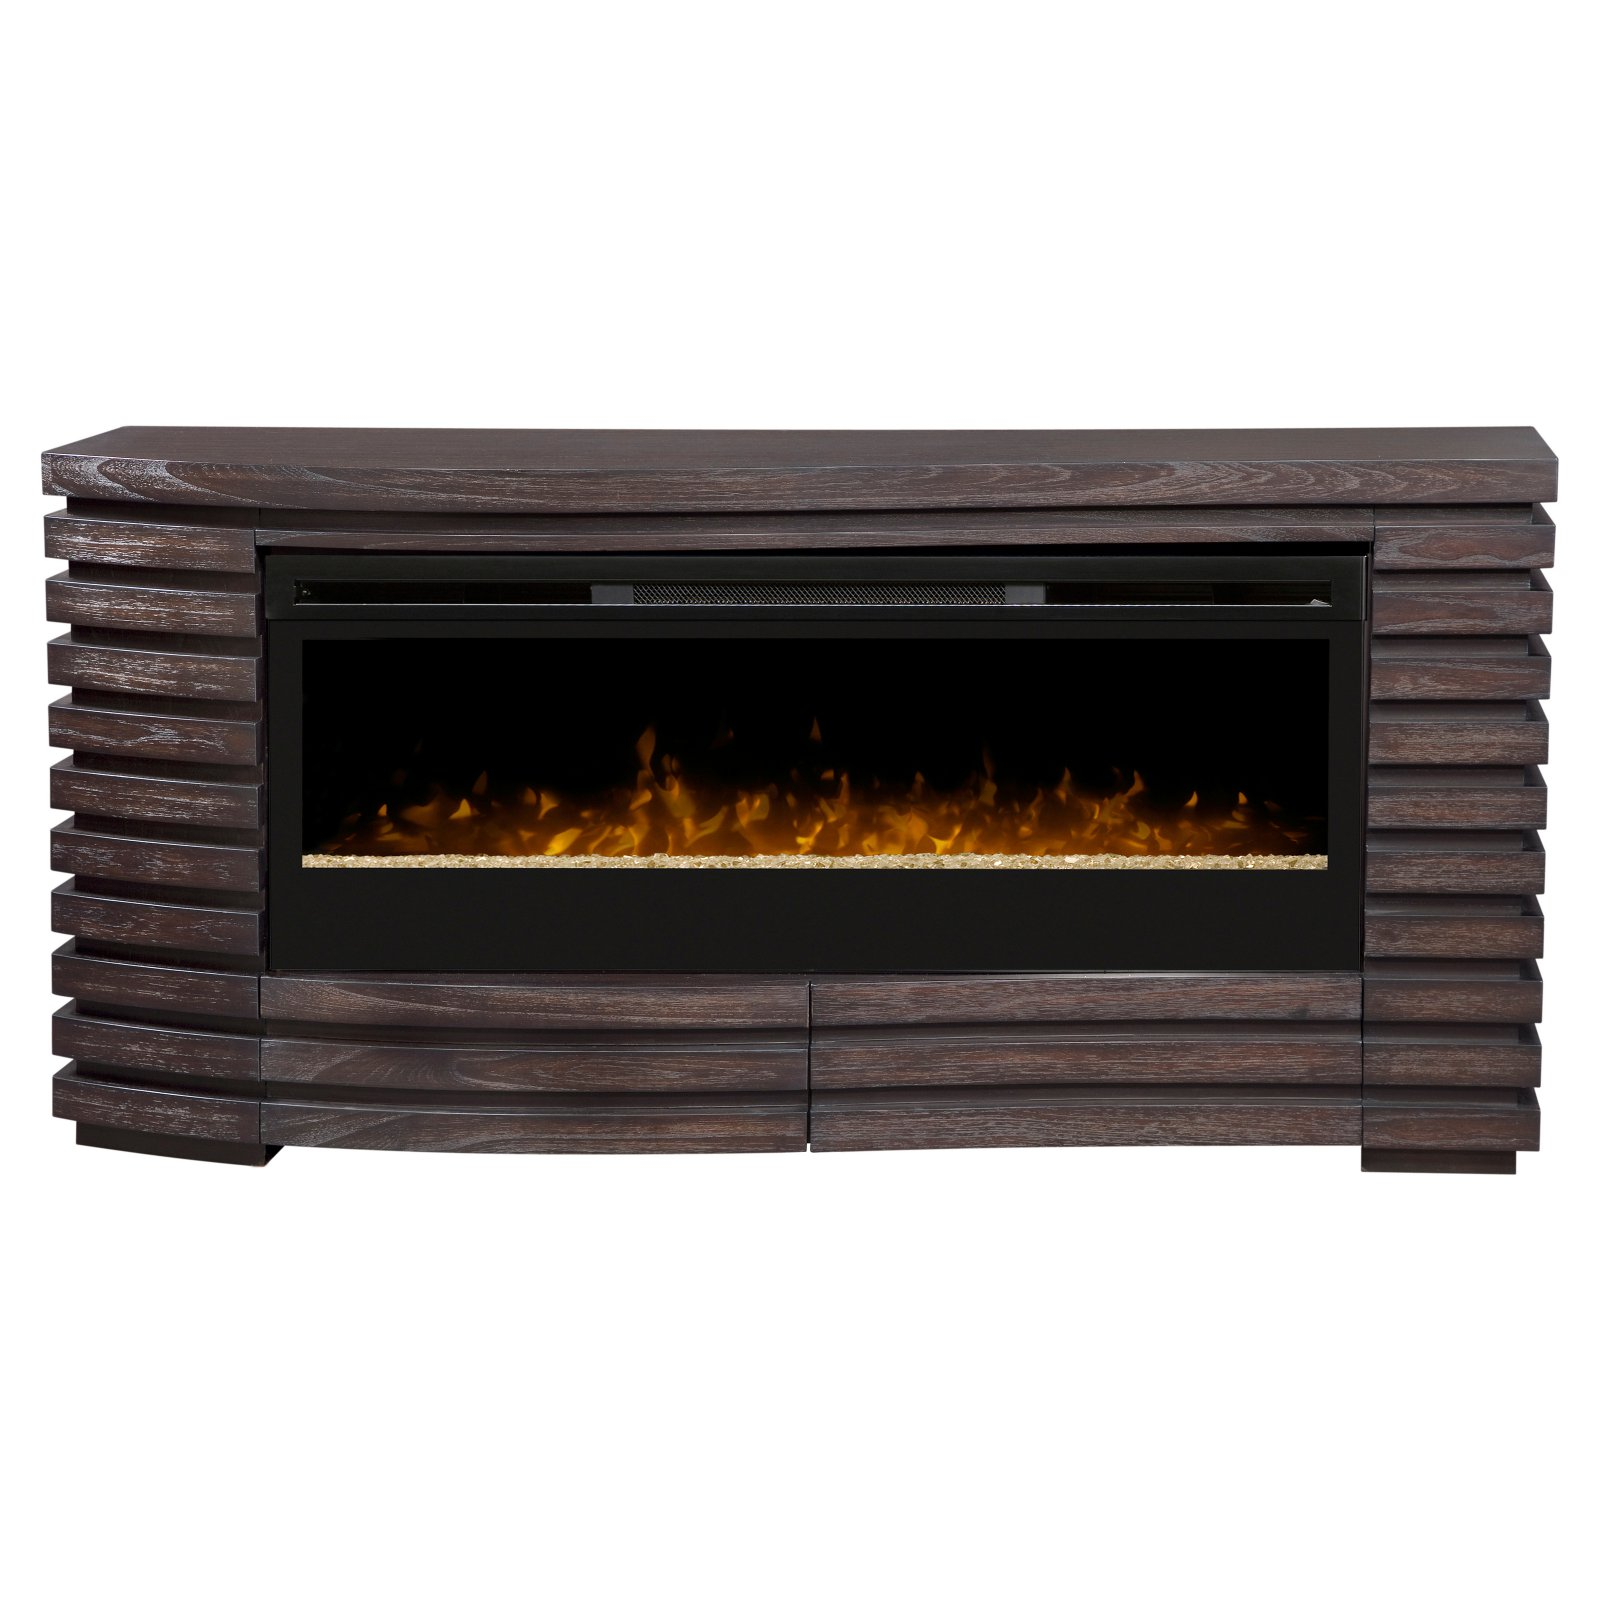 Dimplex Elliot Mantel Fireplace With Glass Ember Bed, Hawthorne